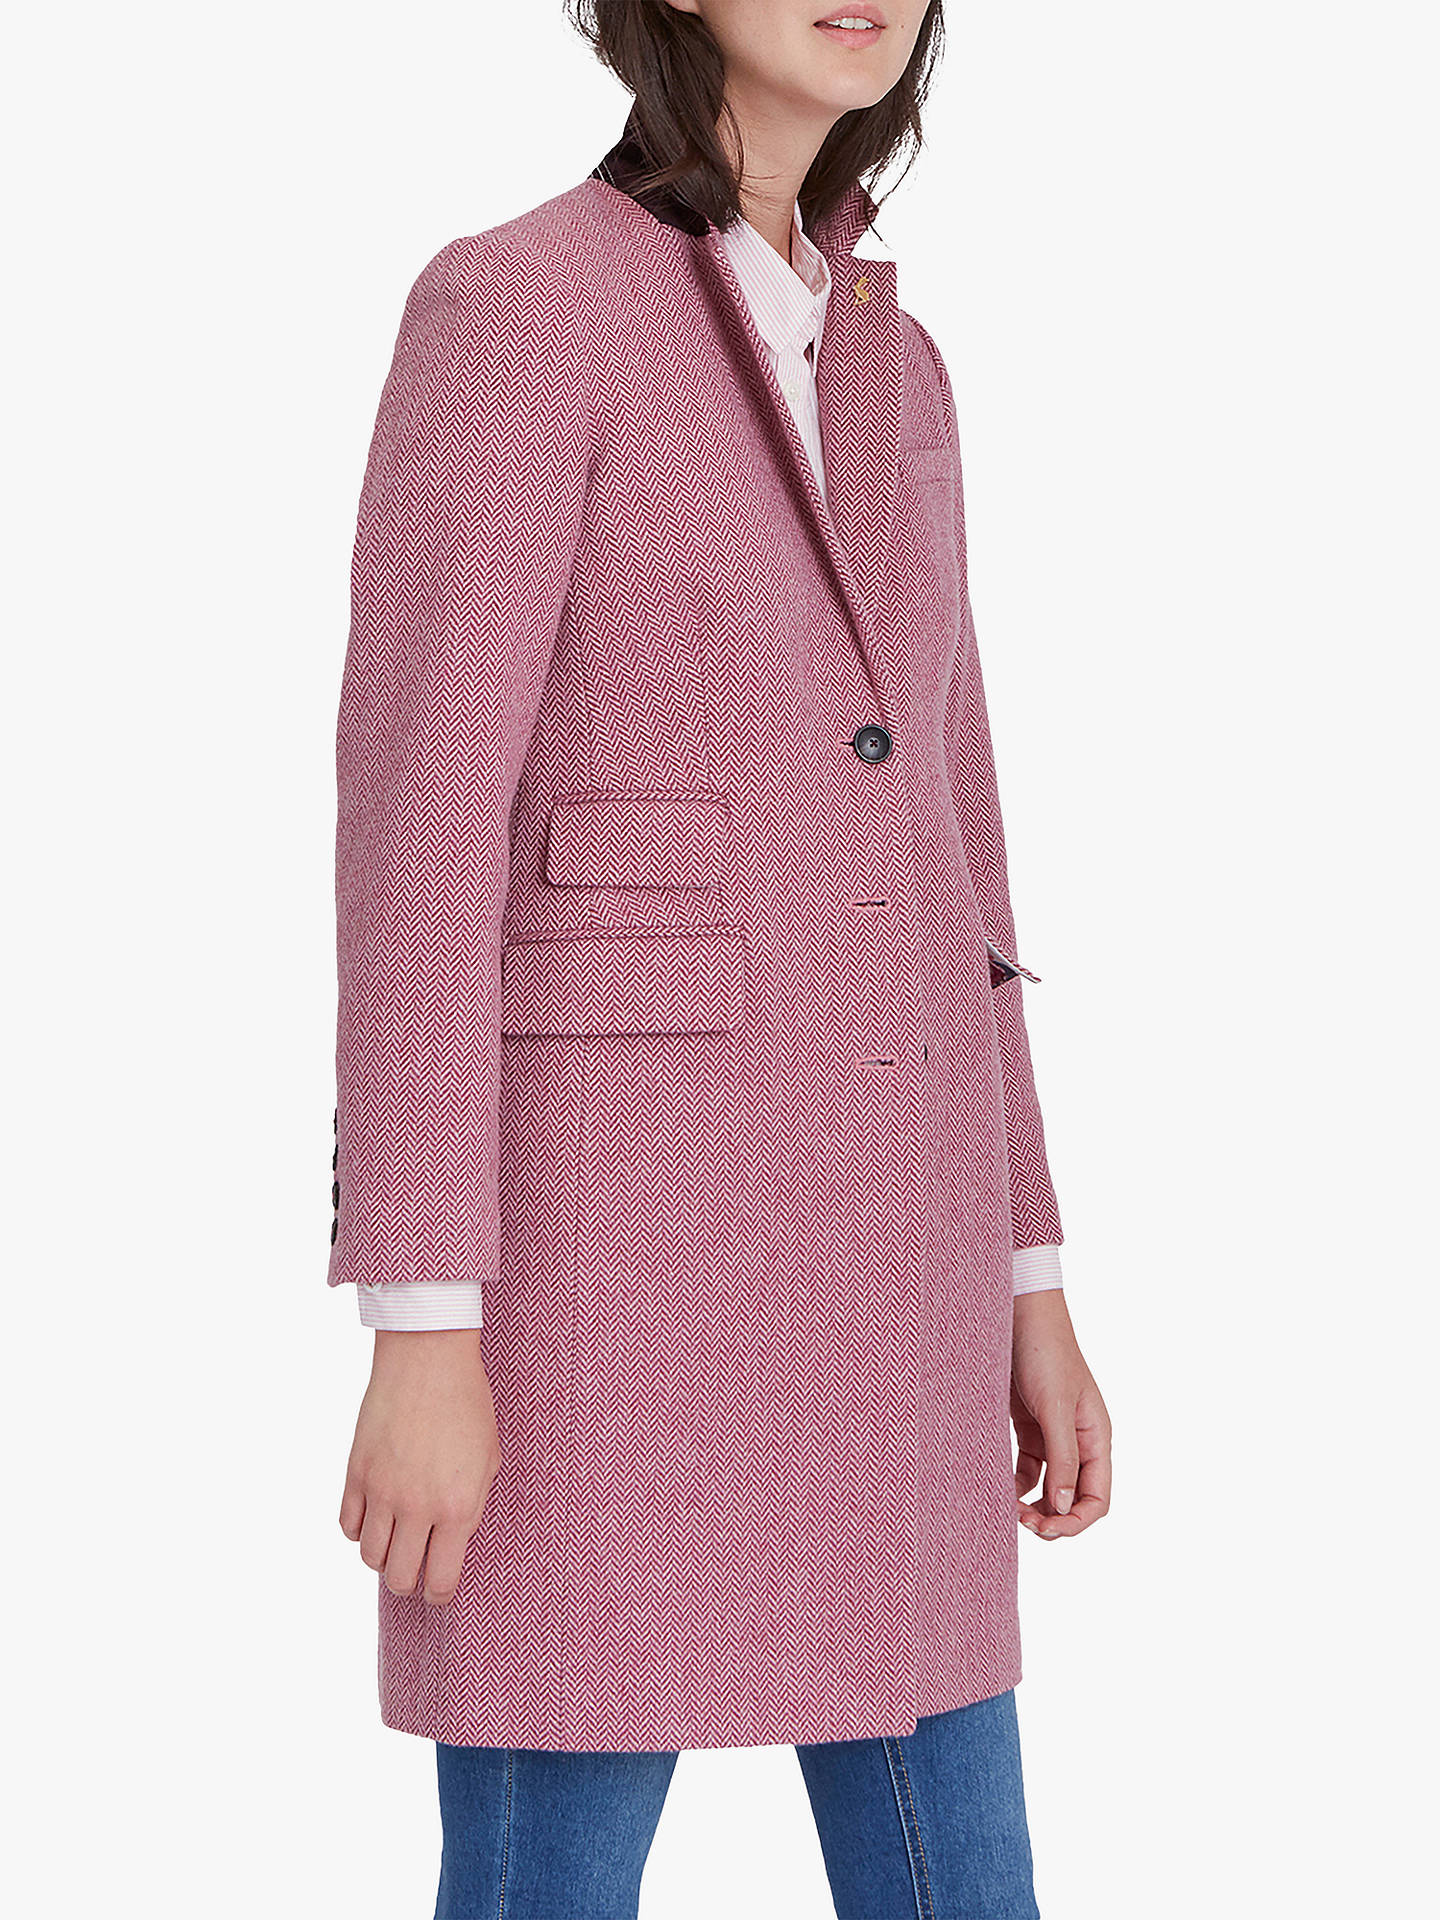 Joules Womens Cheltenham Tweed Coat in RASPBERRY